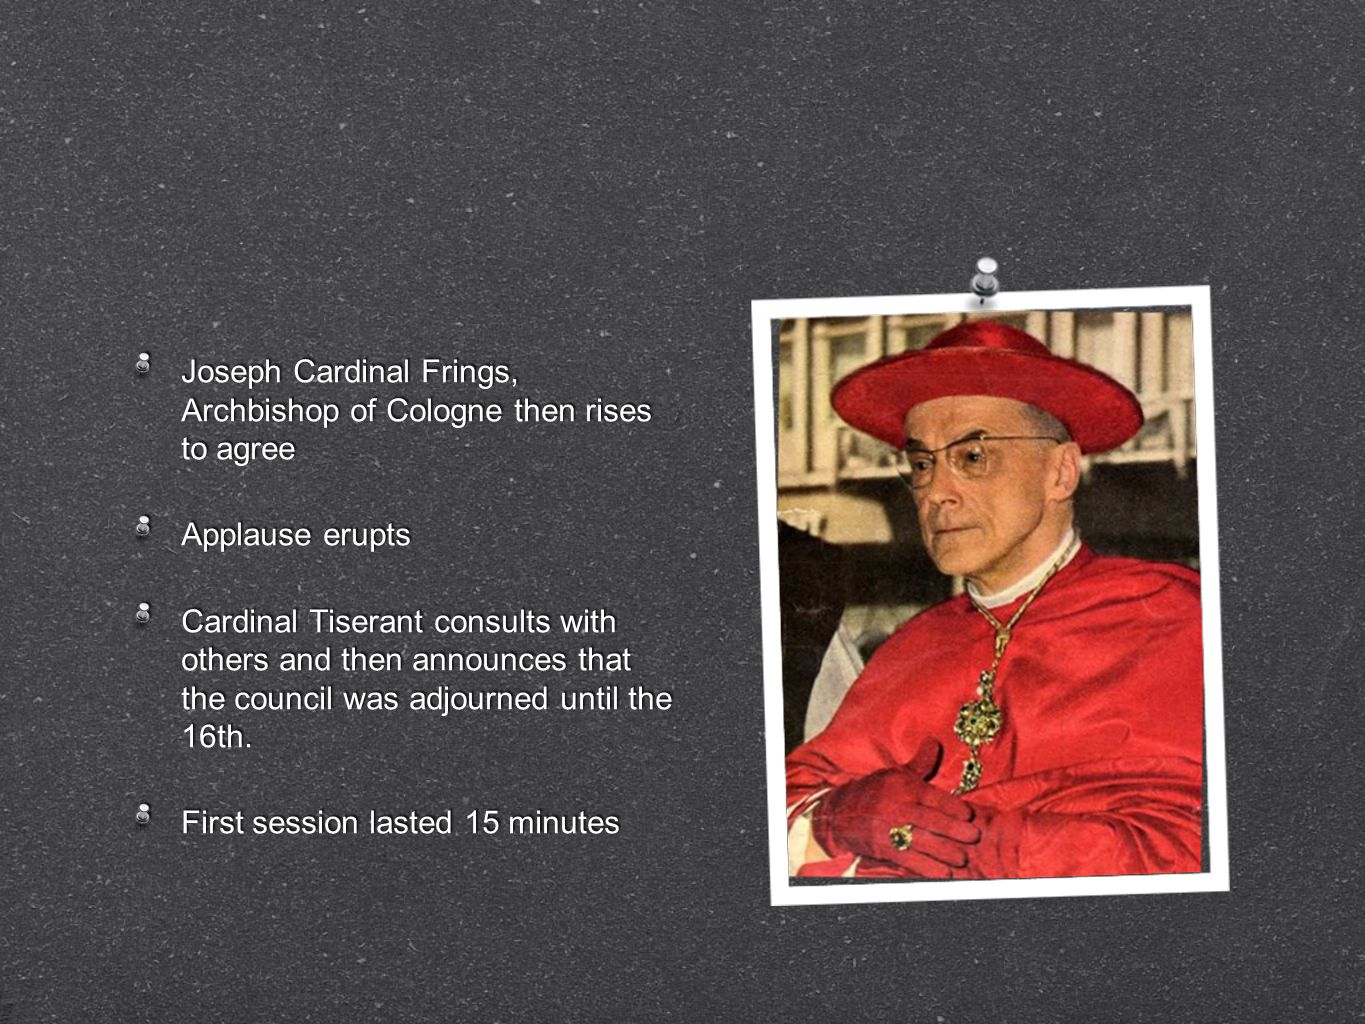 Joseph Cardinal Frings, Archbishop of Cologne then rises to agree